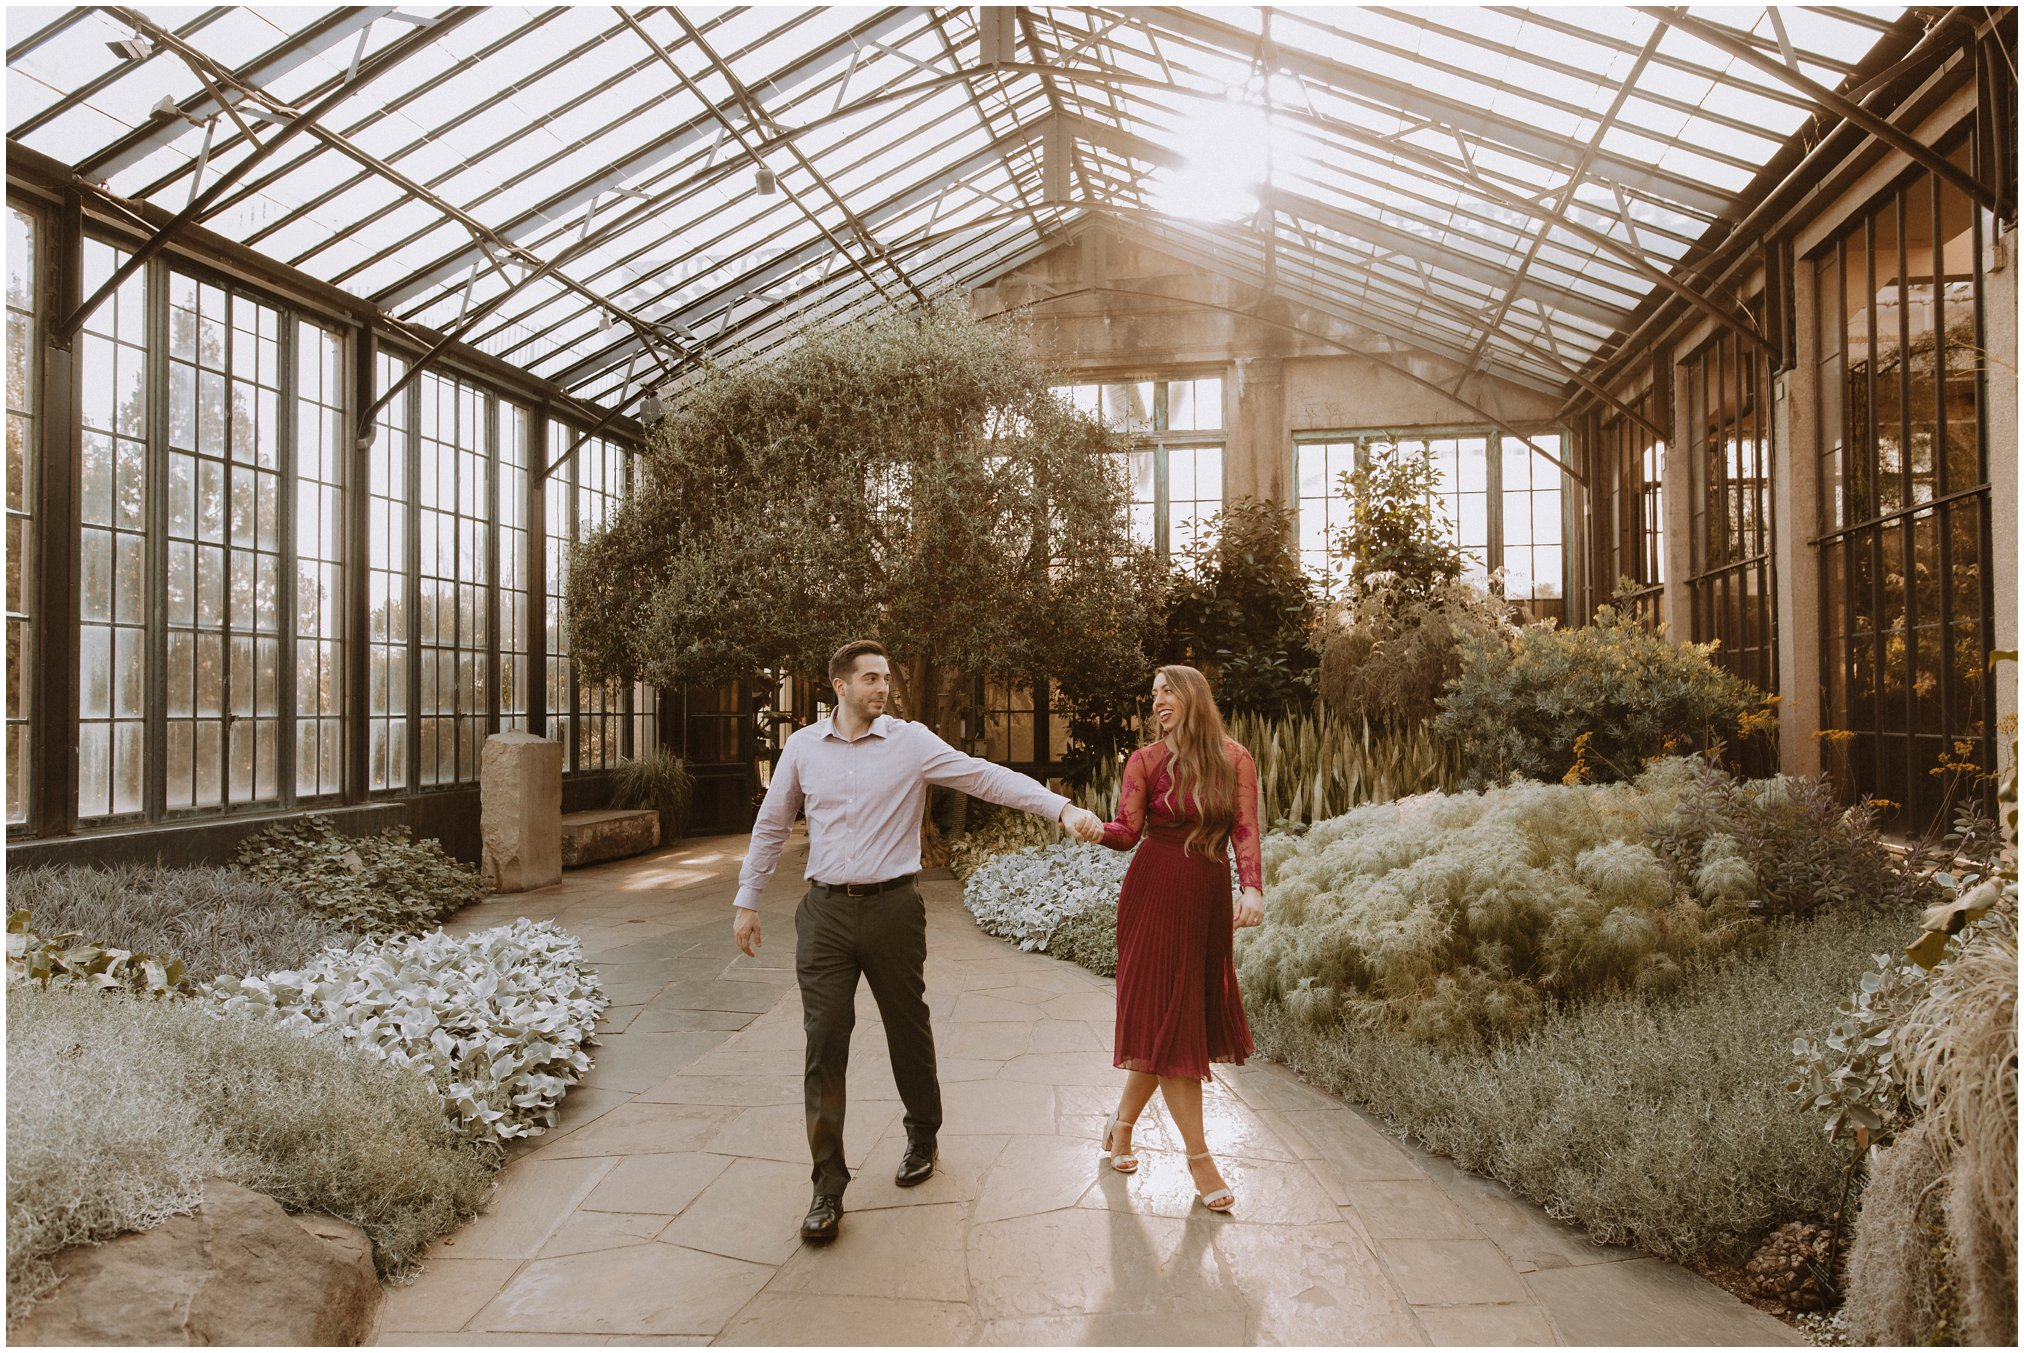 Sunset Engagement Pictures in Greenhouse